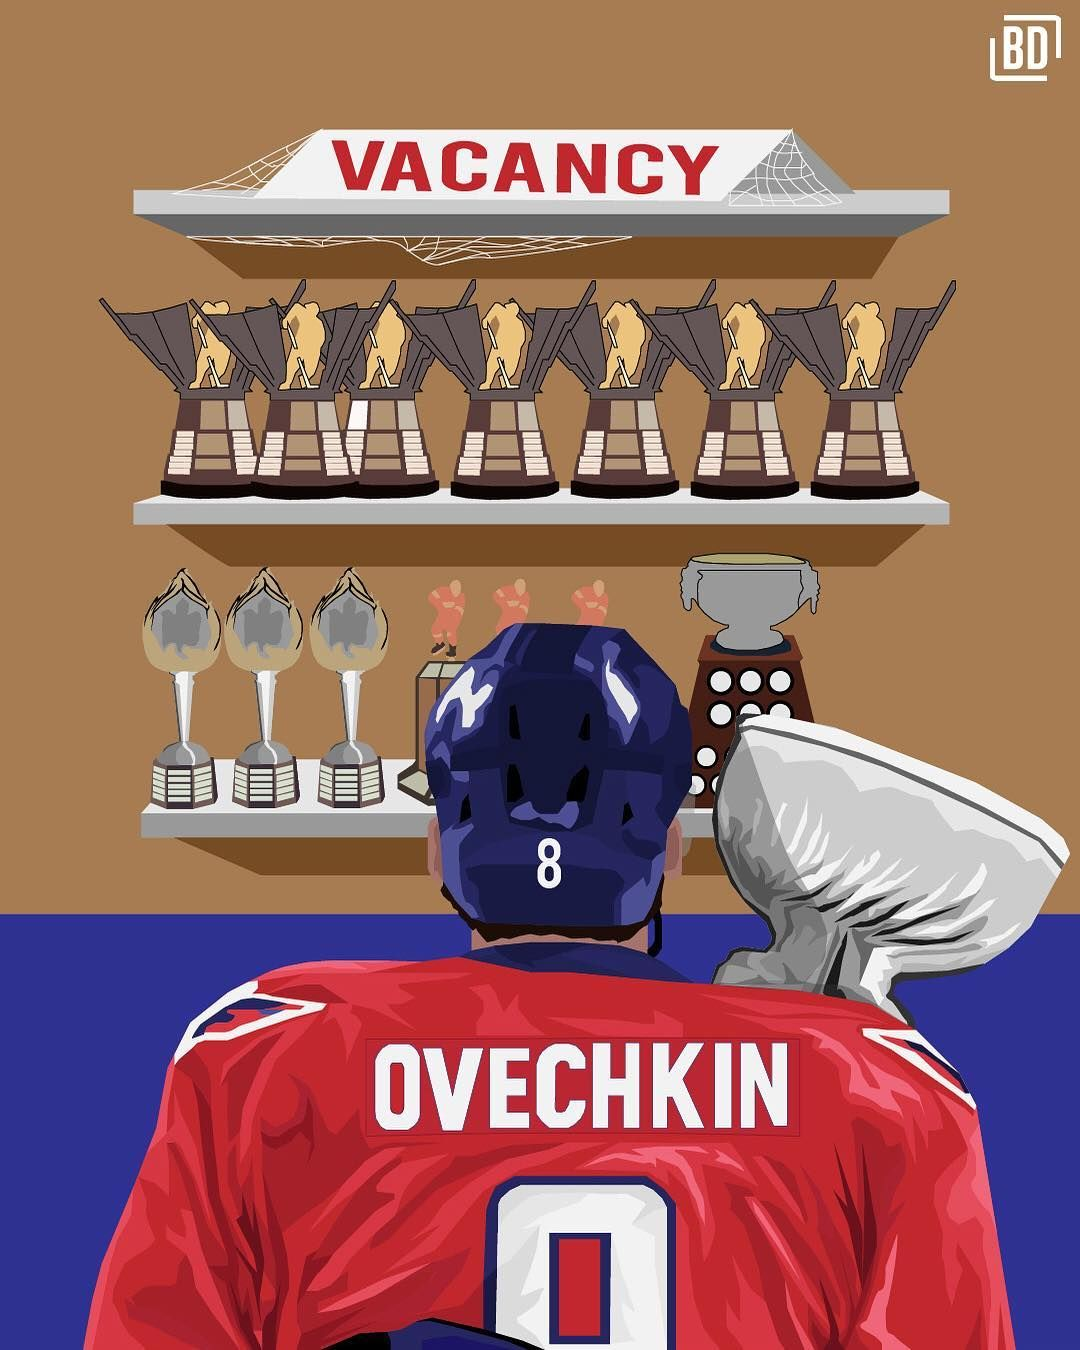 info for 24336 36f20 No vacancy . #StanleyCup #Caps #Ovi | H o c k e y P ...